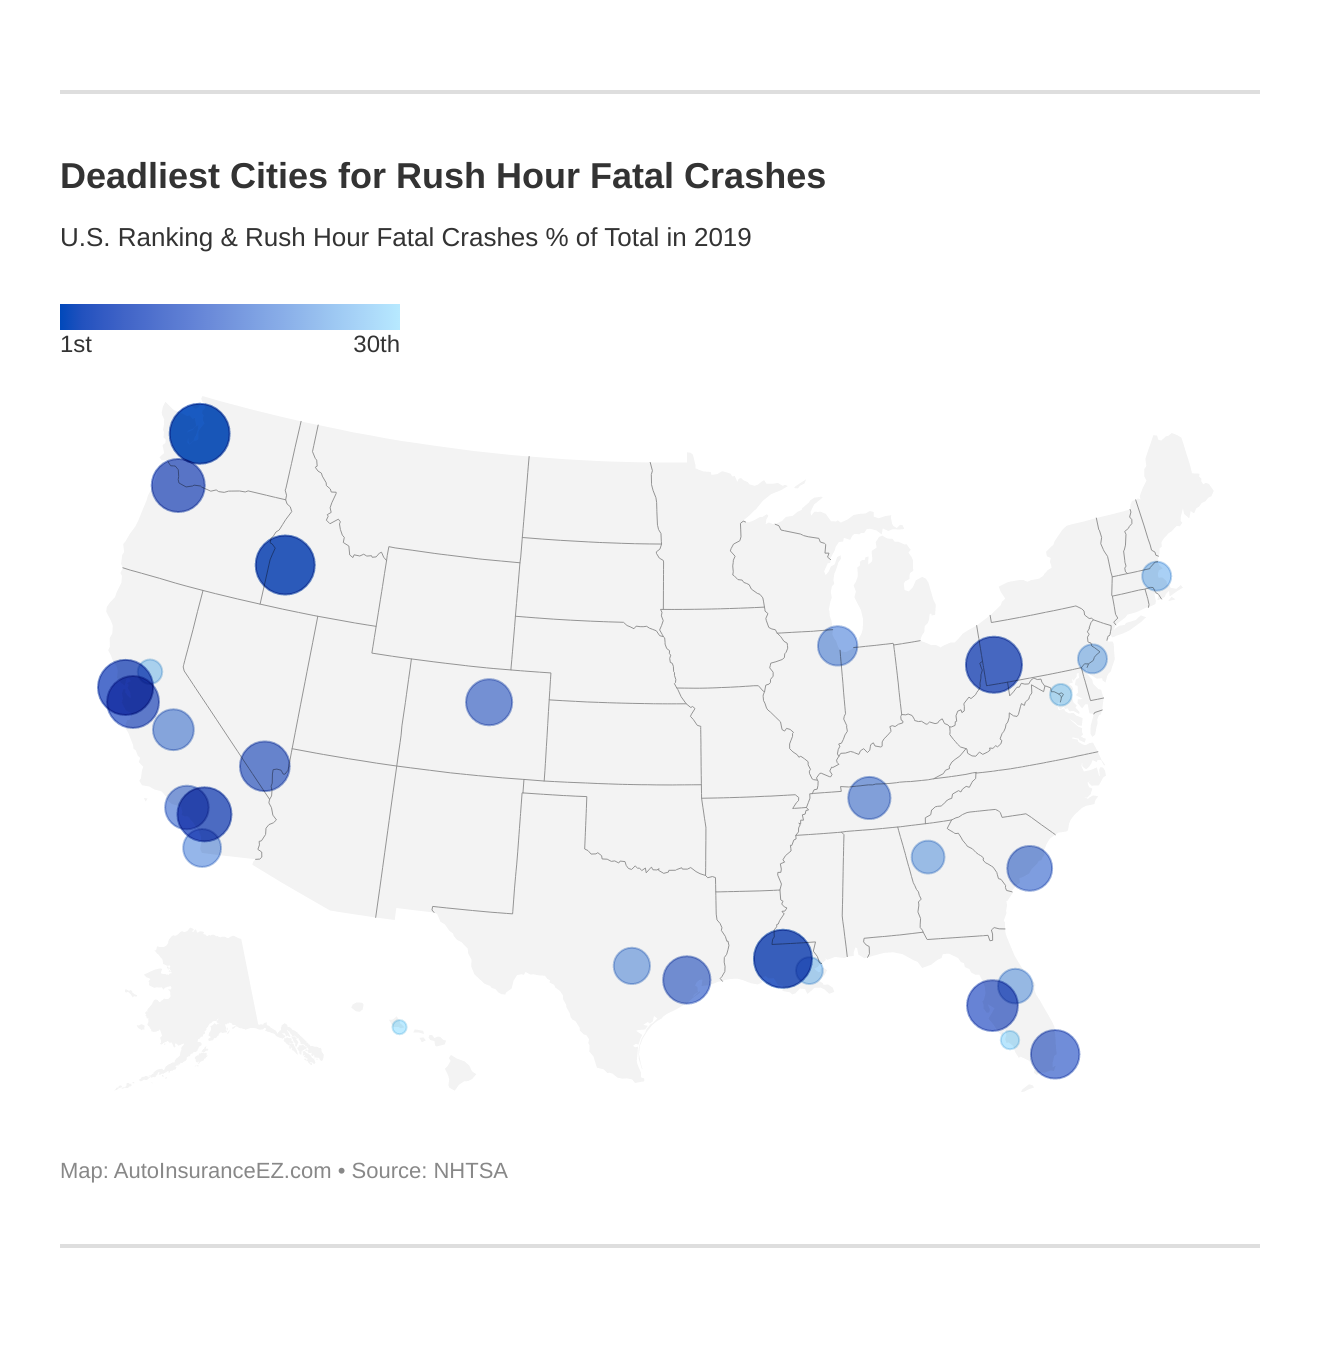 <strong>Deadliest Cities for Rush Hour Fatal Crashes</strong>